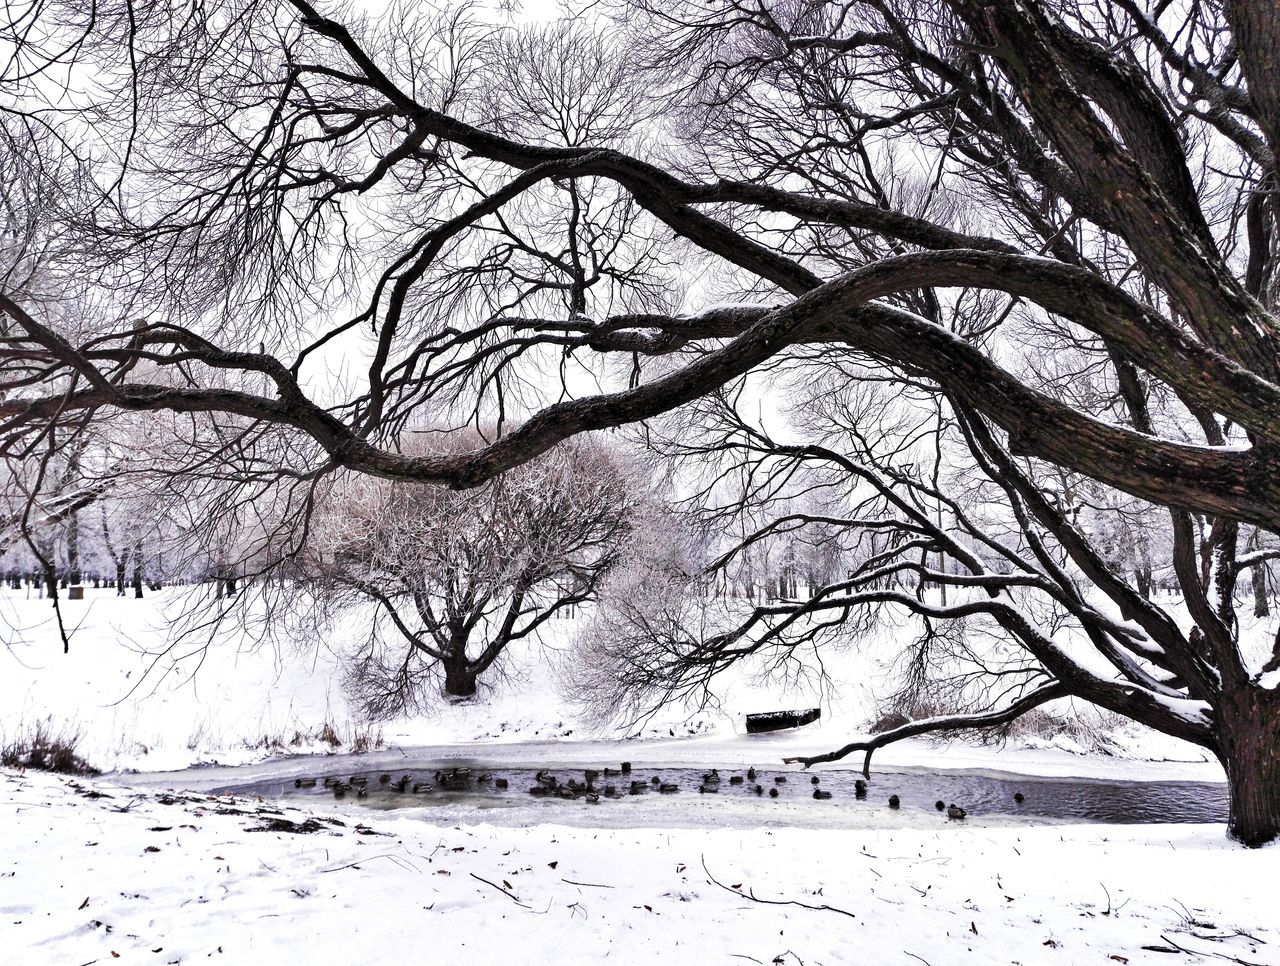 Tree Nature Day Beauty In Nature Tranquility Bare Tree Hello World Enjoying Life City Black And White Beauty In Nature Cityscape Weather Cold Temperature Ducks In Water Snow Water_collection